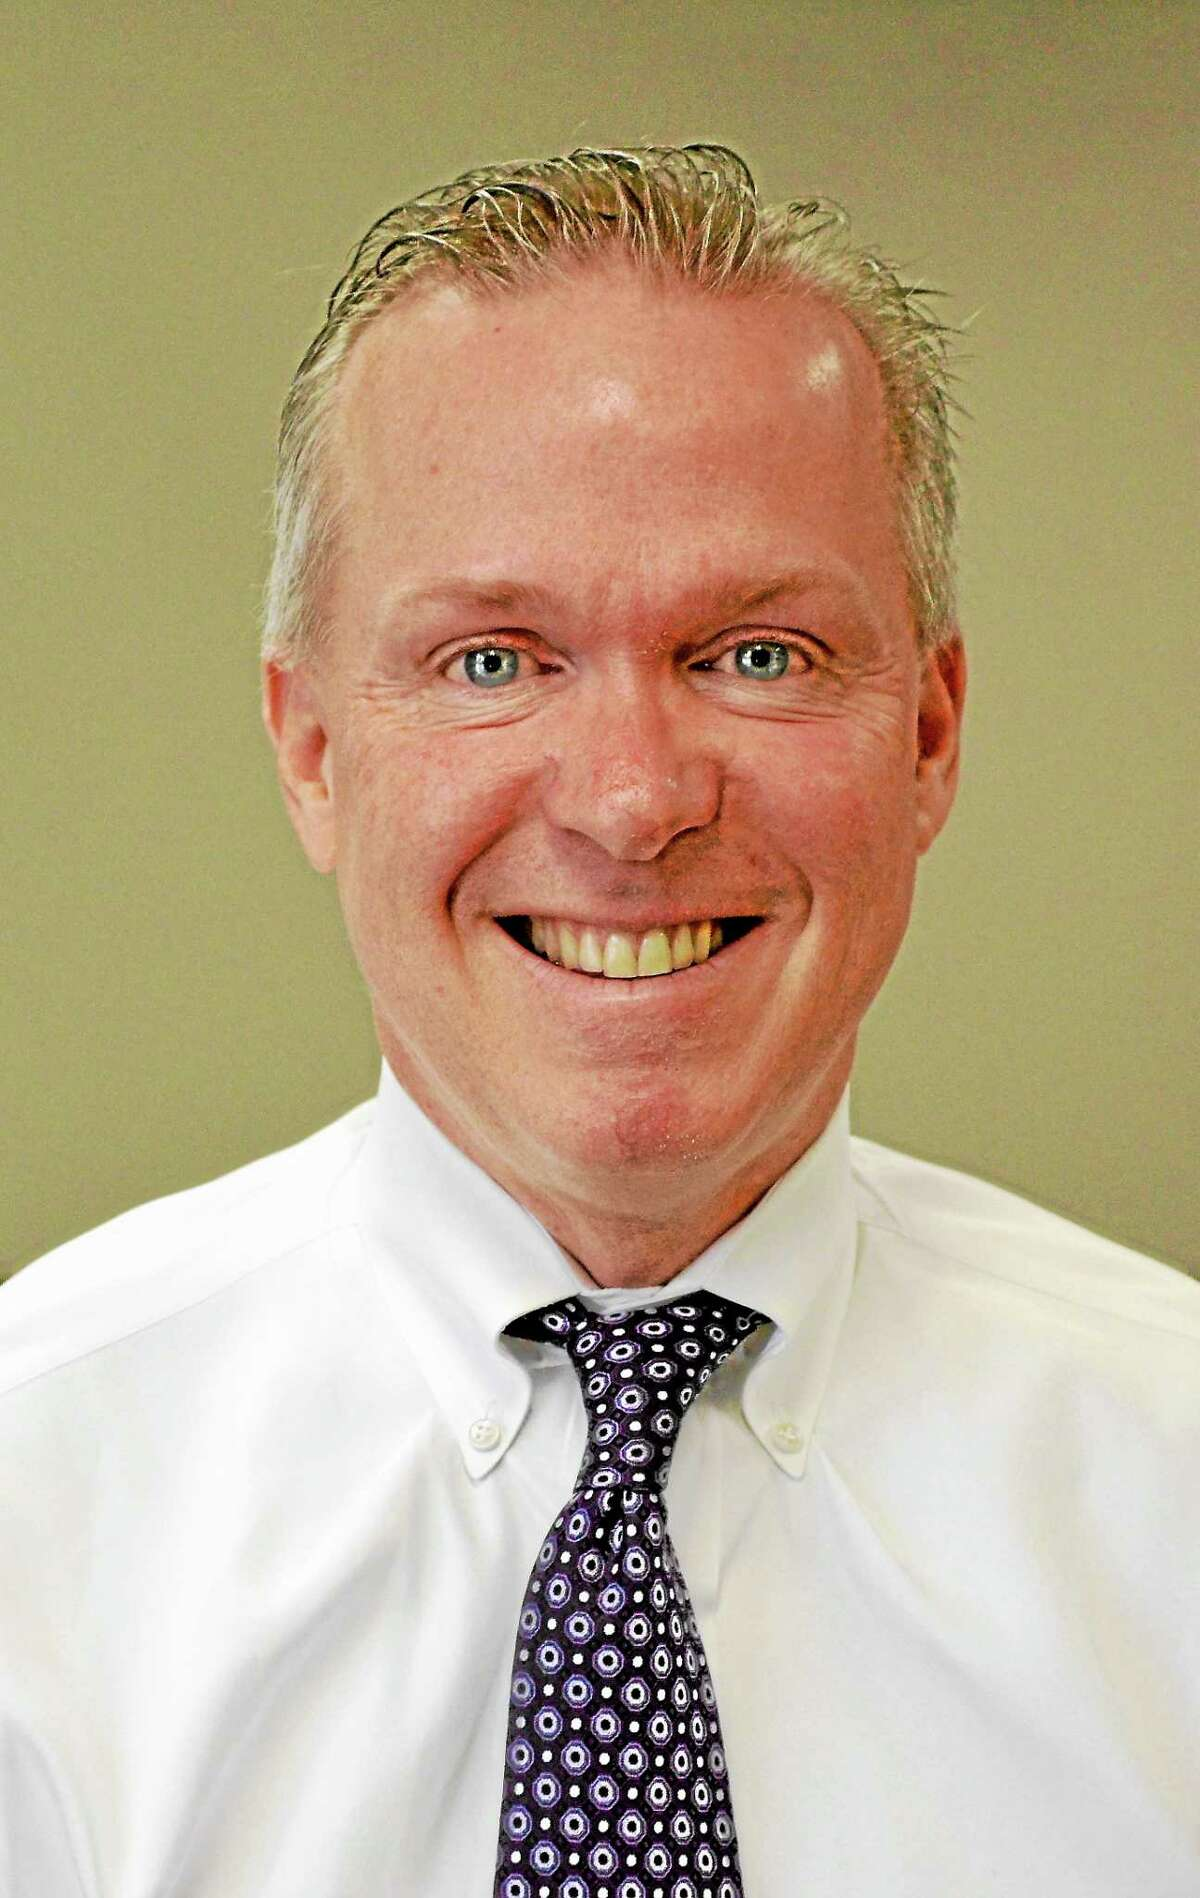 Dan Jerram, First Selectman of New Hartford, running for reelection on the Republican ticket.